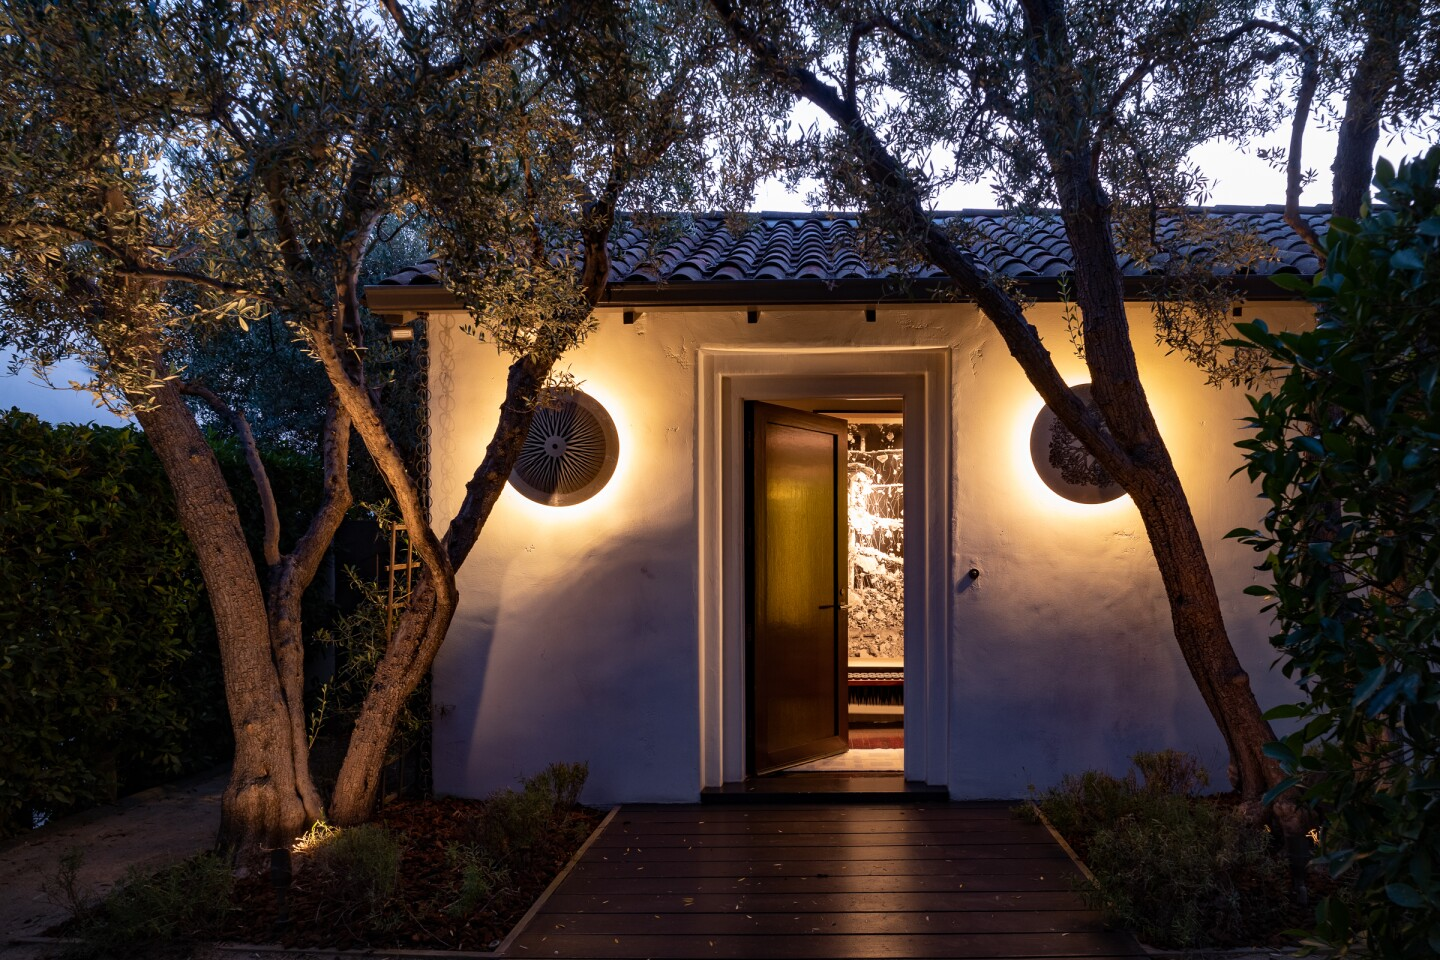 Jhoni Marchinko and Antonia Hutt's Hollywood Hills home